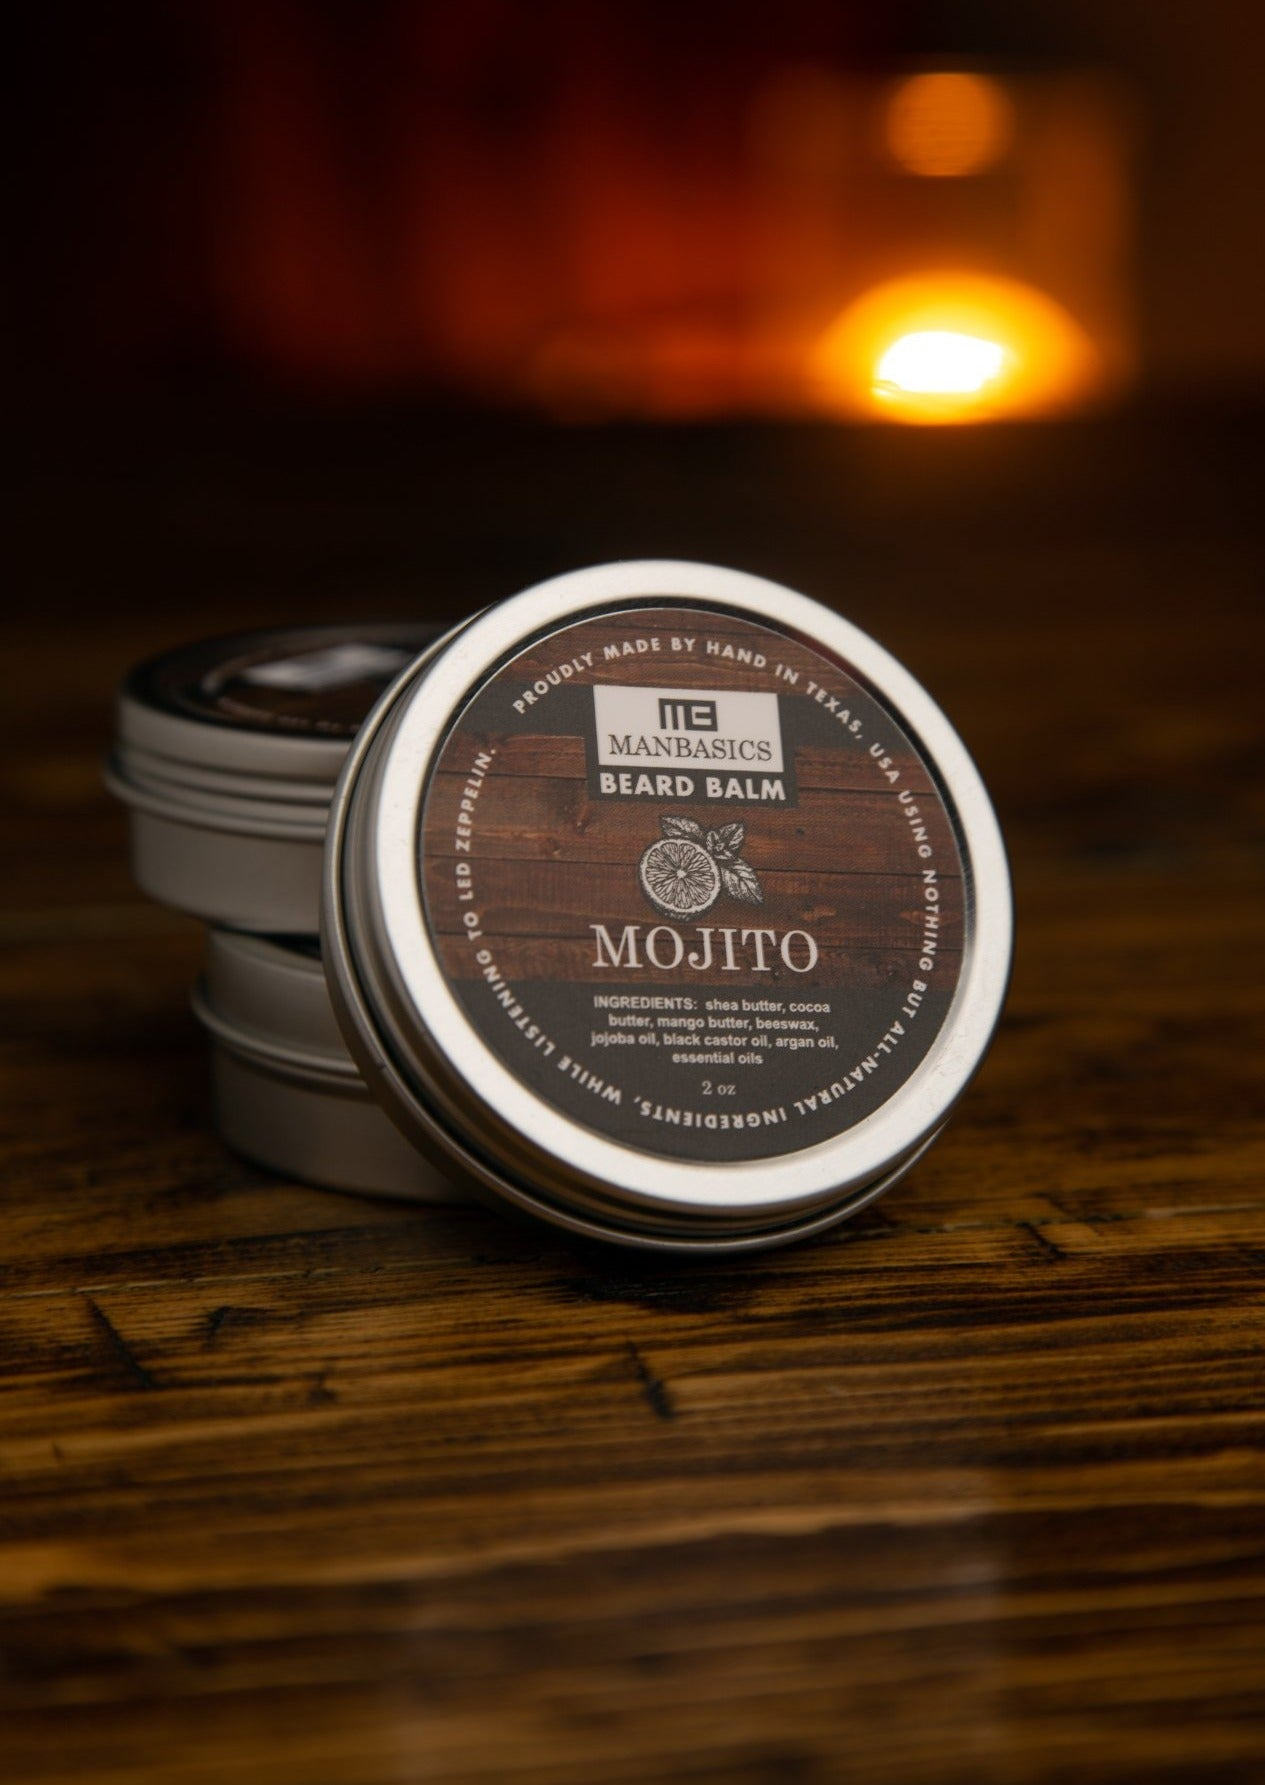 All Natural Beard Balm - Mojito Blend